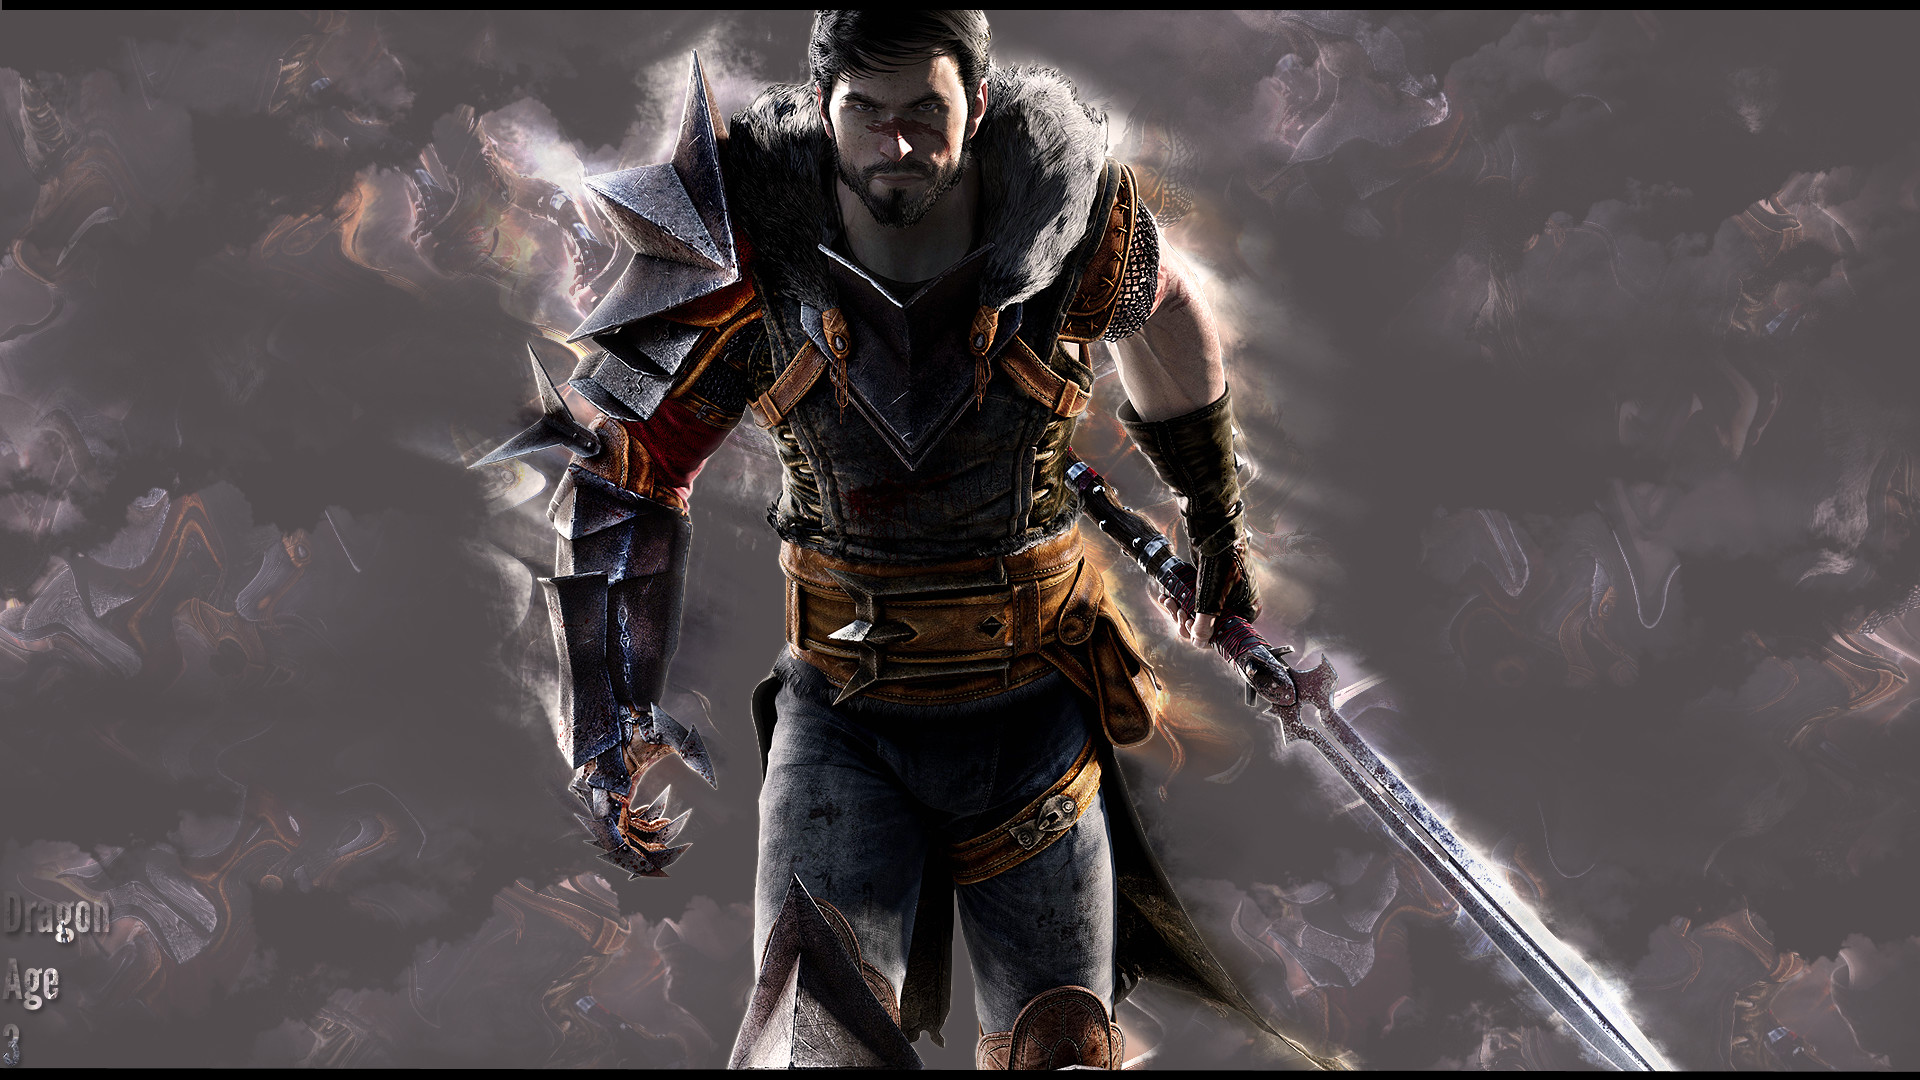 Dragon Age 3 Wallpaper by Tooyp Dragon Age 3 Wallpaper by Tooyp